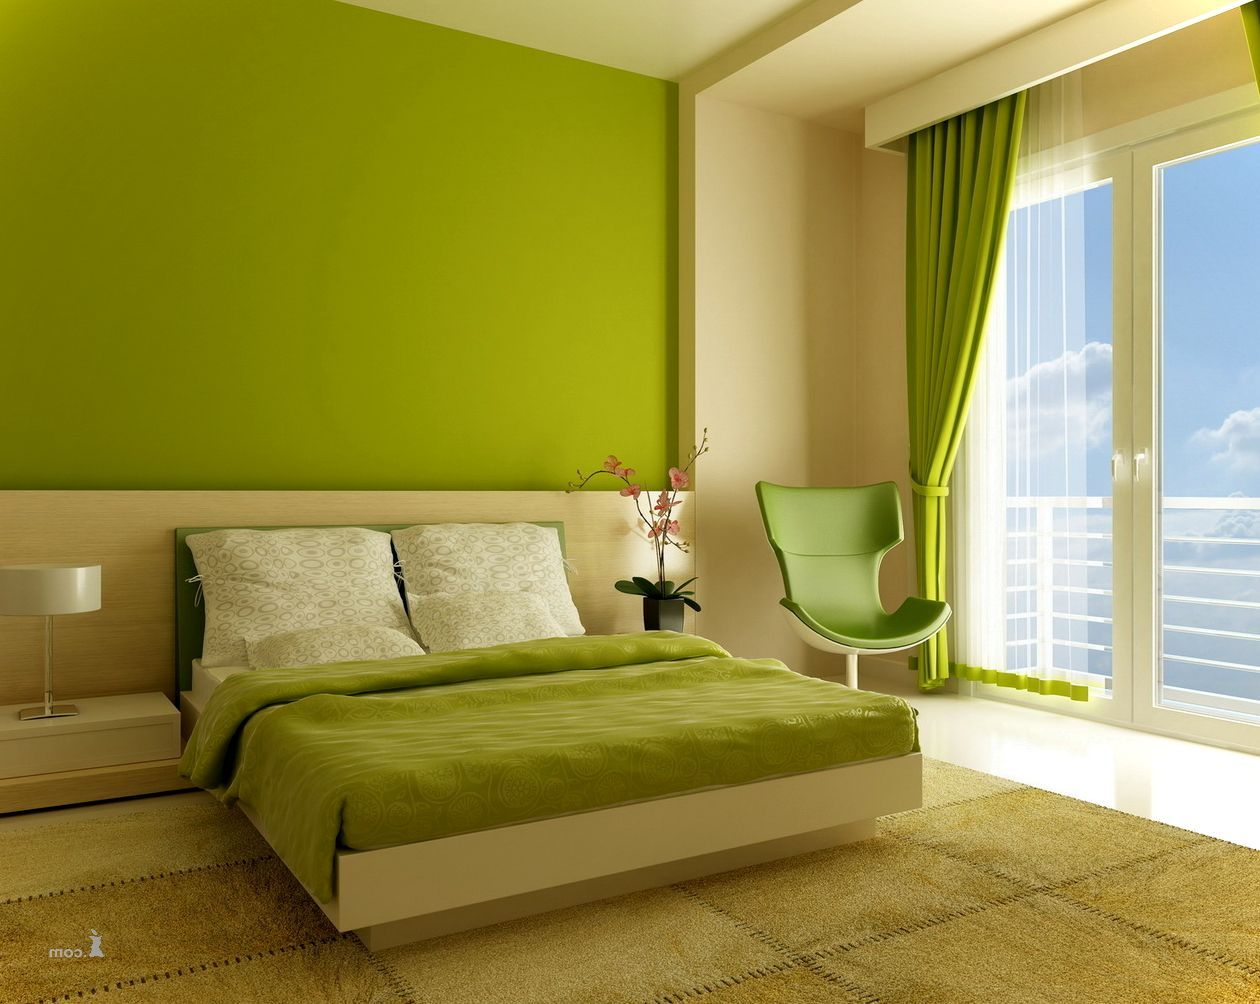 Wall Colours For Bedroom Asian Paints - Google Search | Room ... Beige Und Grn